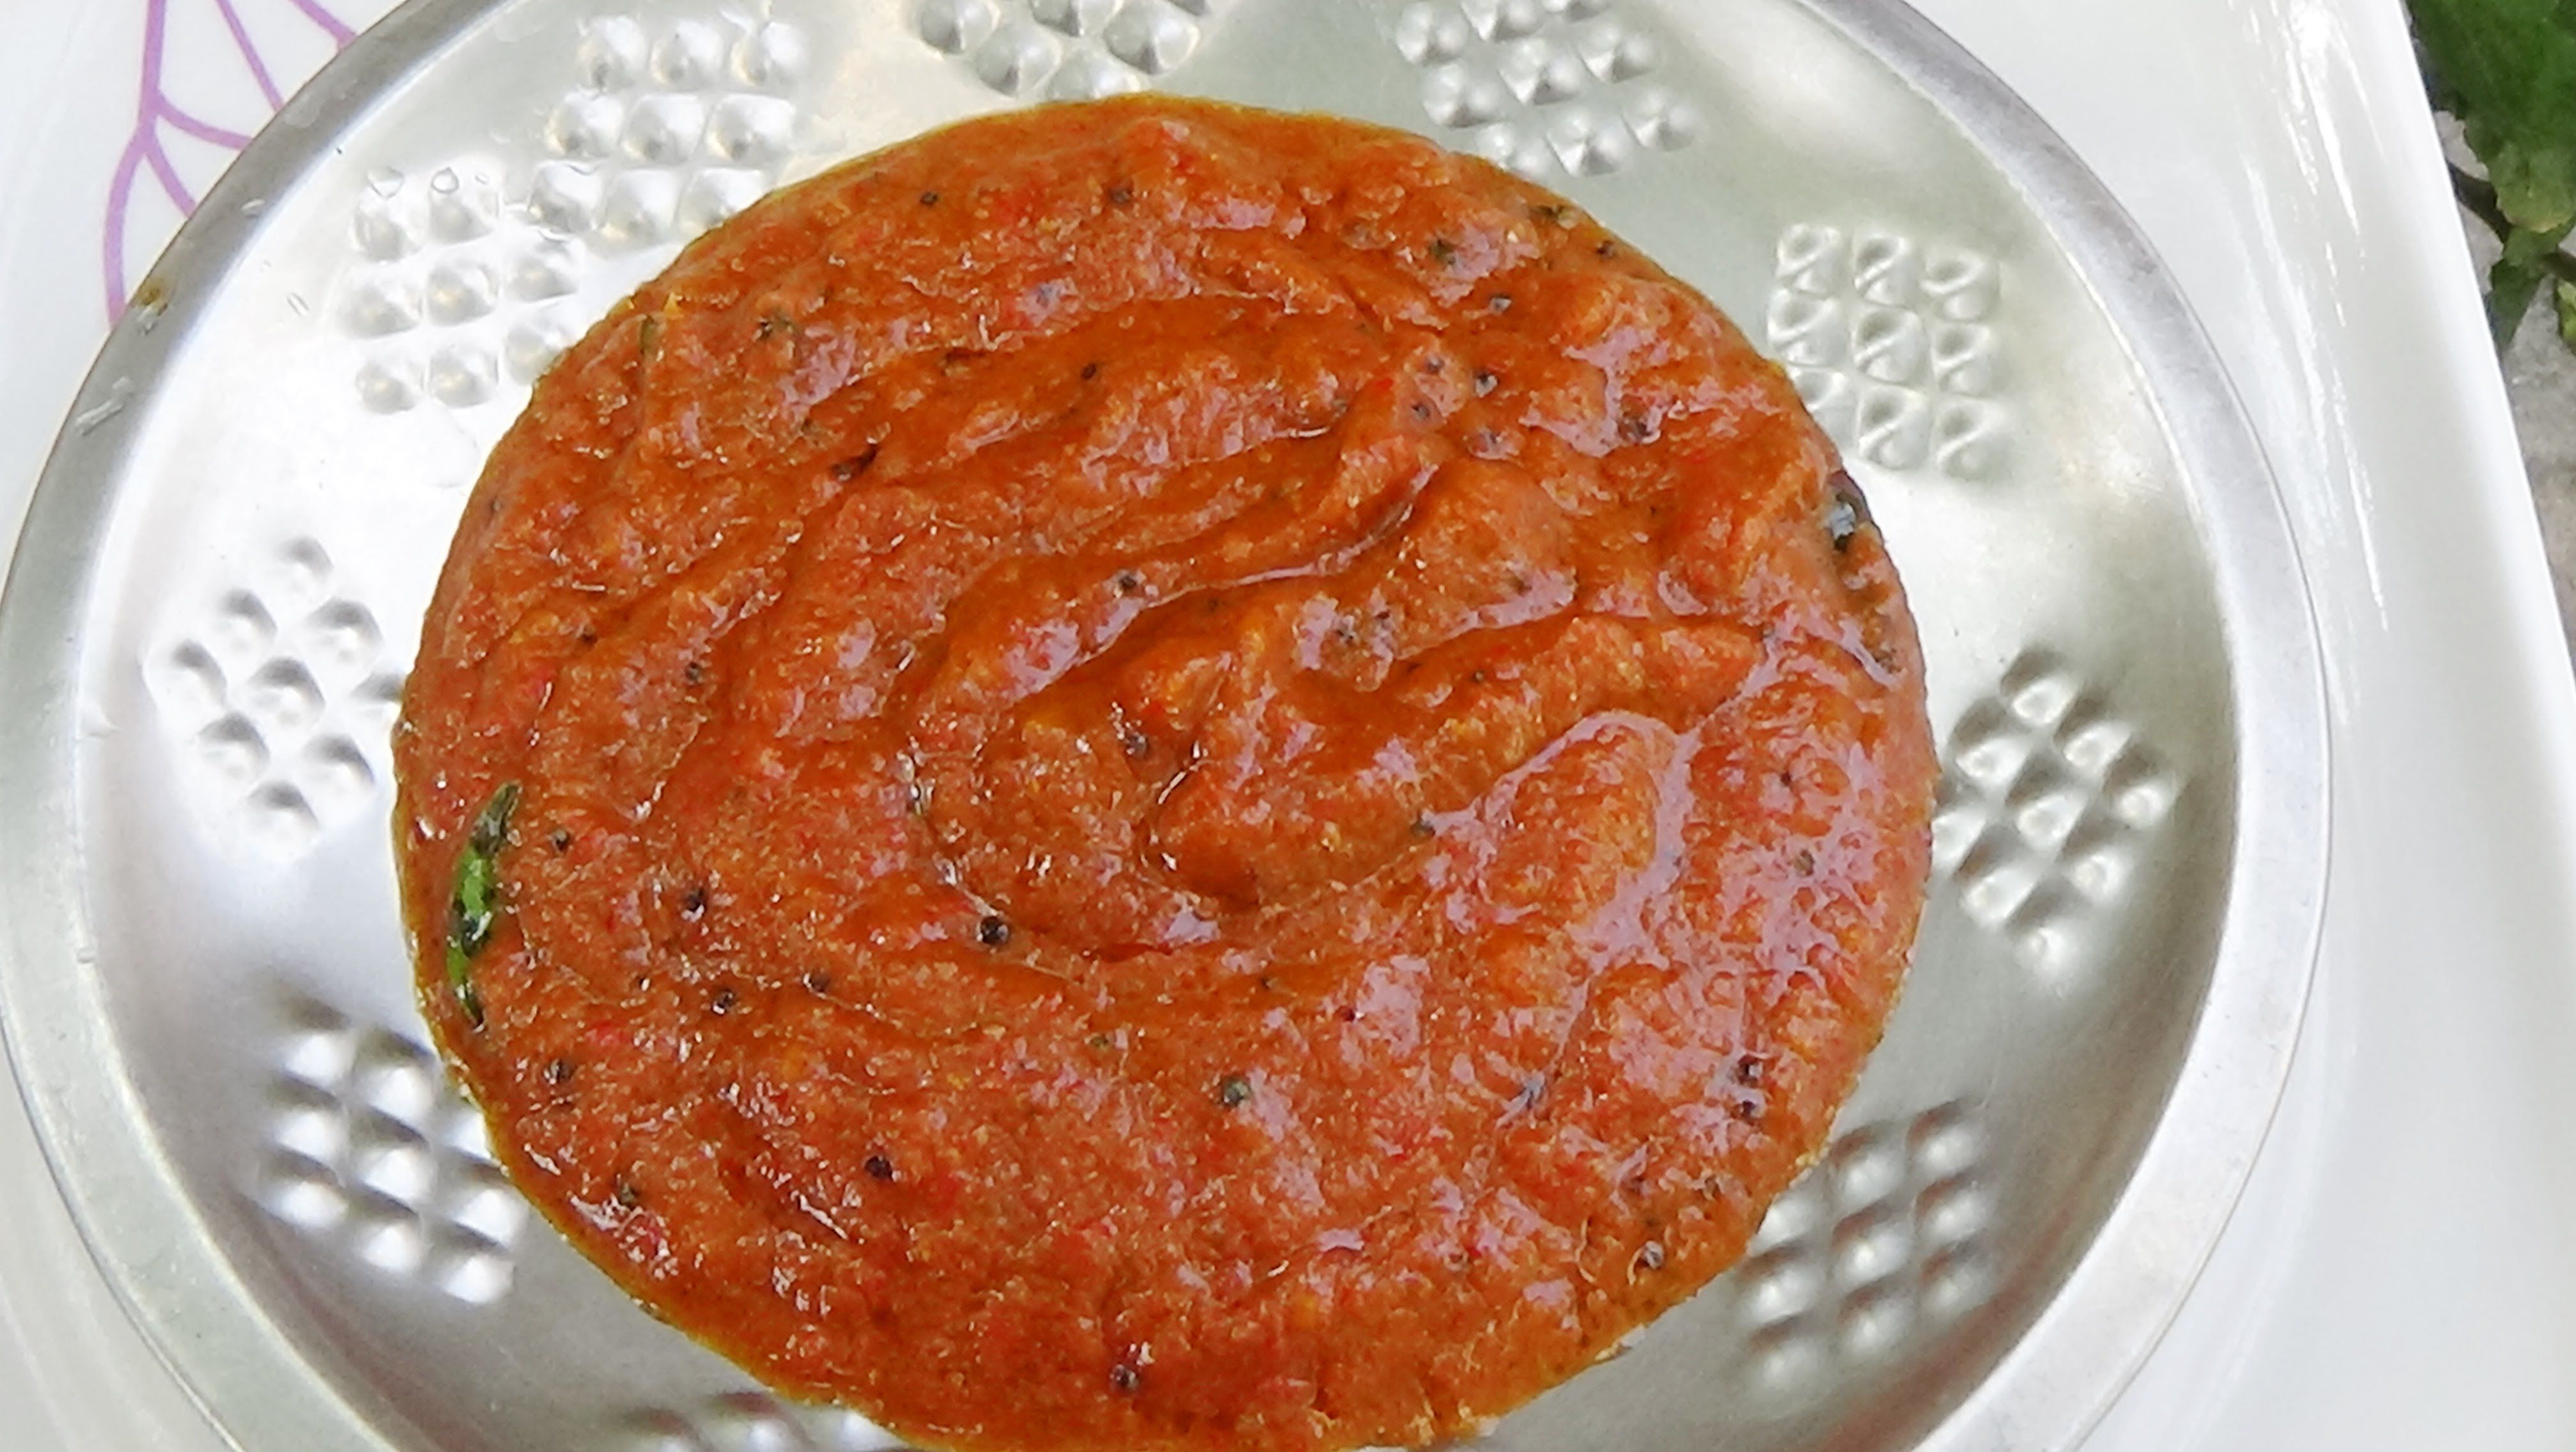 Allam chutney in telugu how to cook allam pachadi how to make food allam chutney in telugu forumfinder Image collections